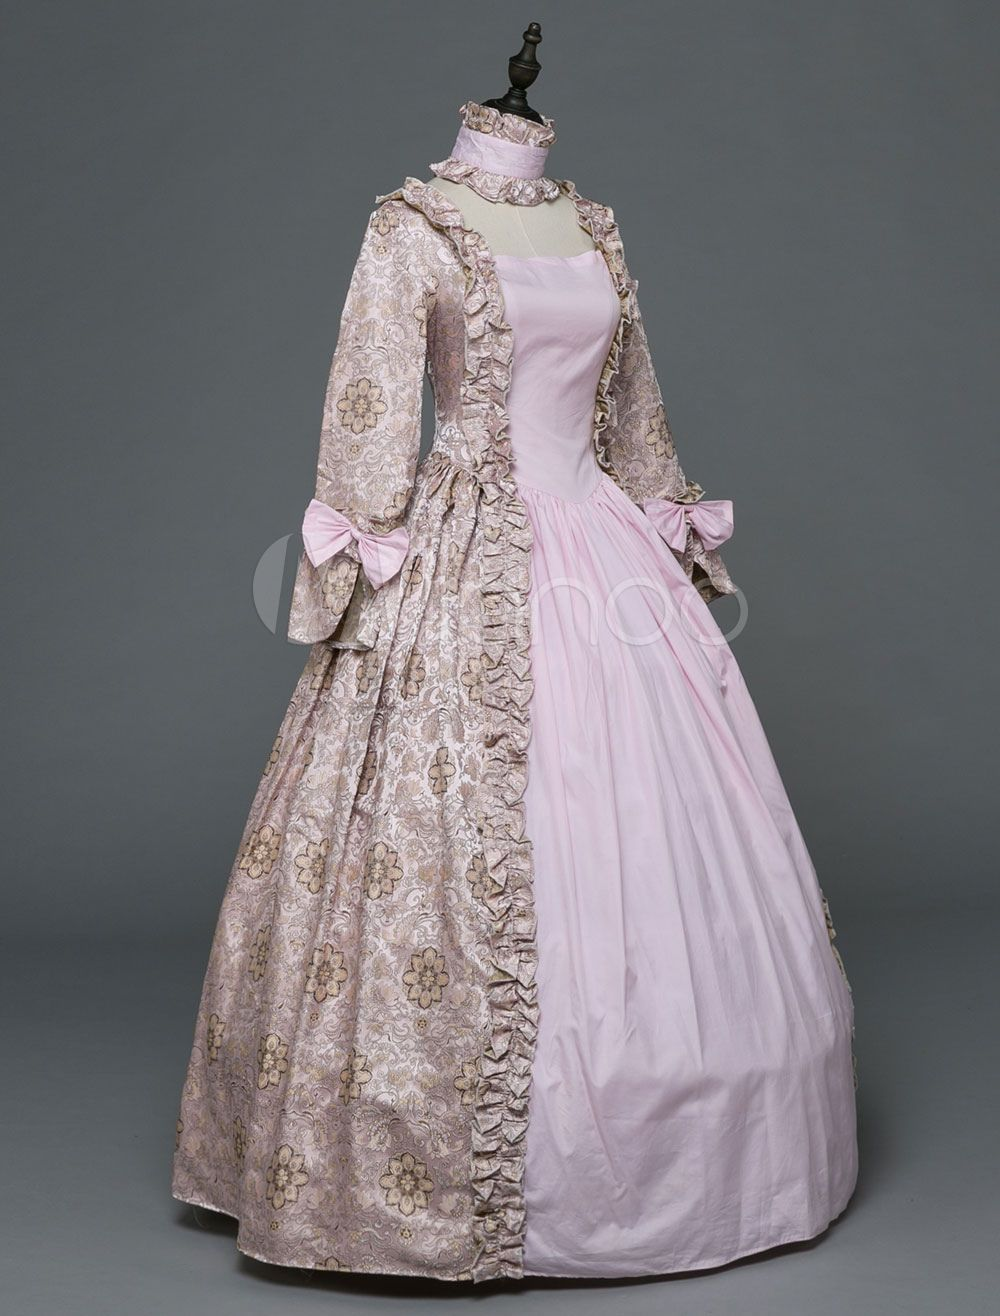 Halloween Retro Costume Pink Victorian Dress Rococo Masquerade Ball Gowns Printed Long Sleeve Vintage Costume Masquerade Ball Gowns Victorian Dress Ball Gowns [ 1316 x 1000 Pixel ]